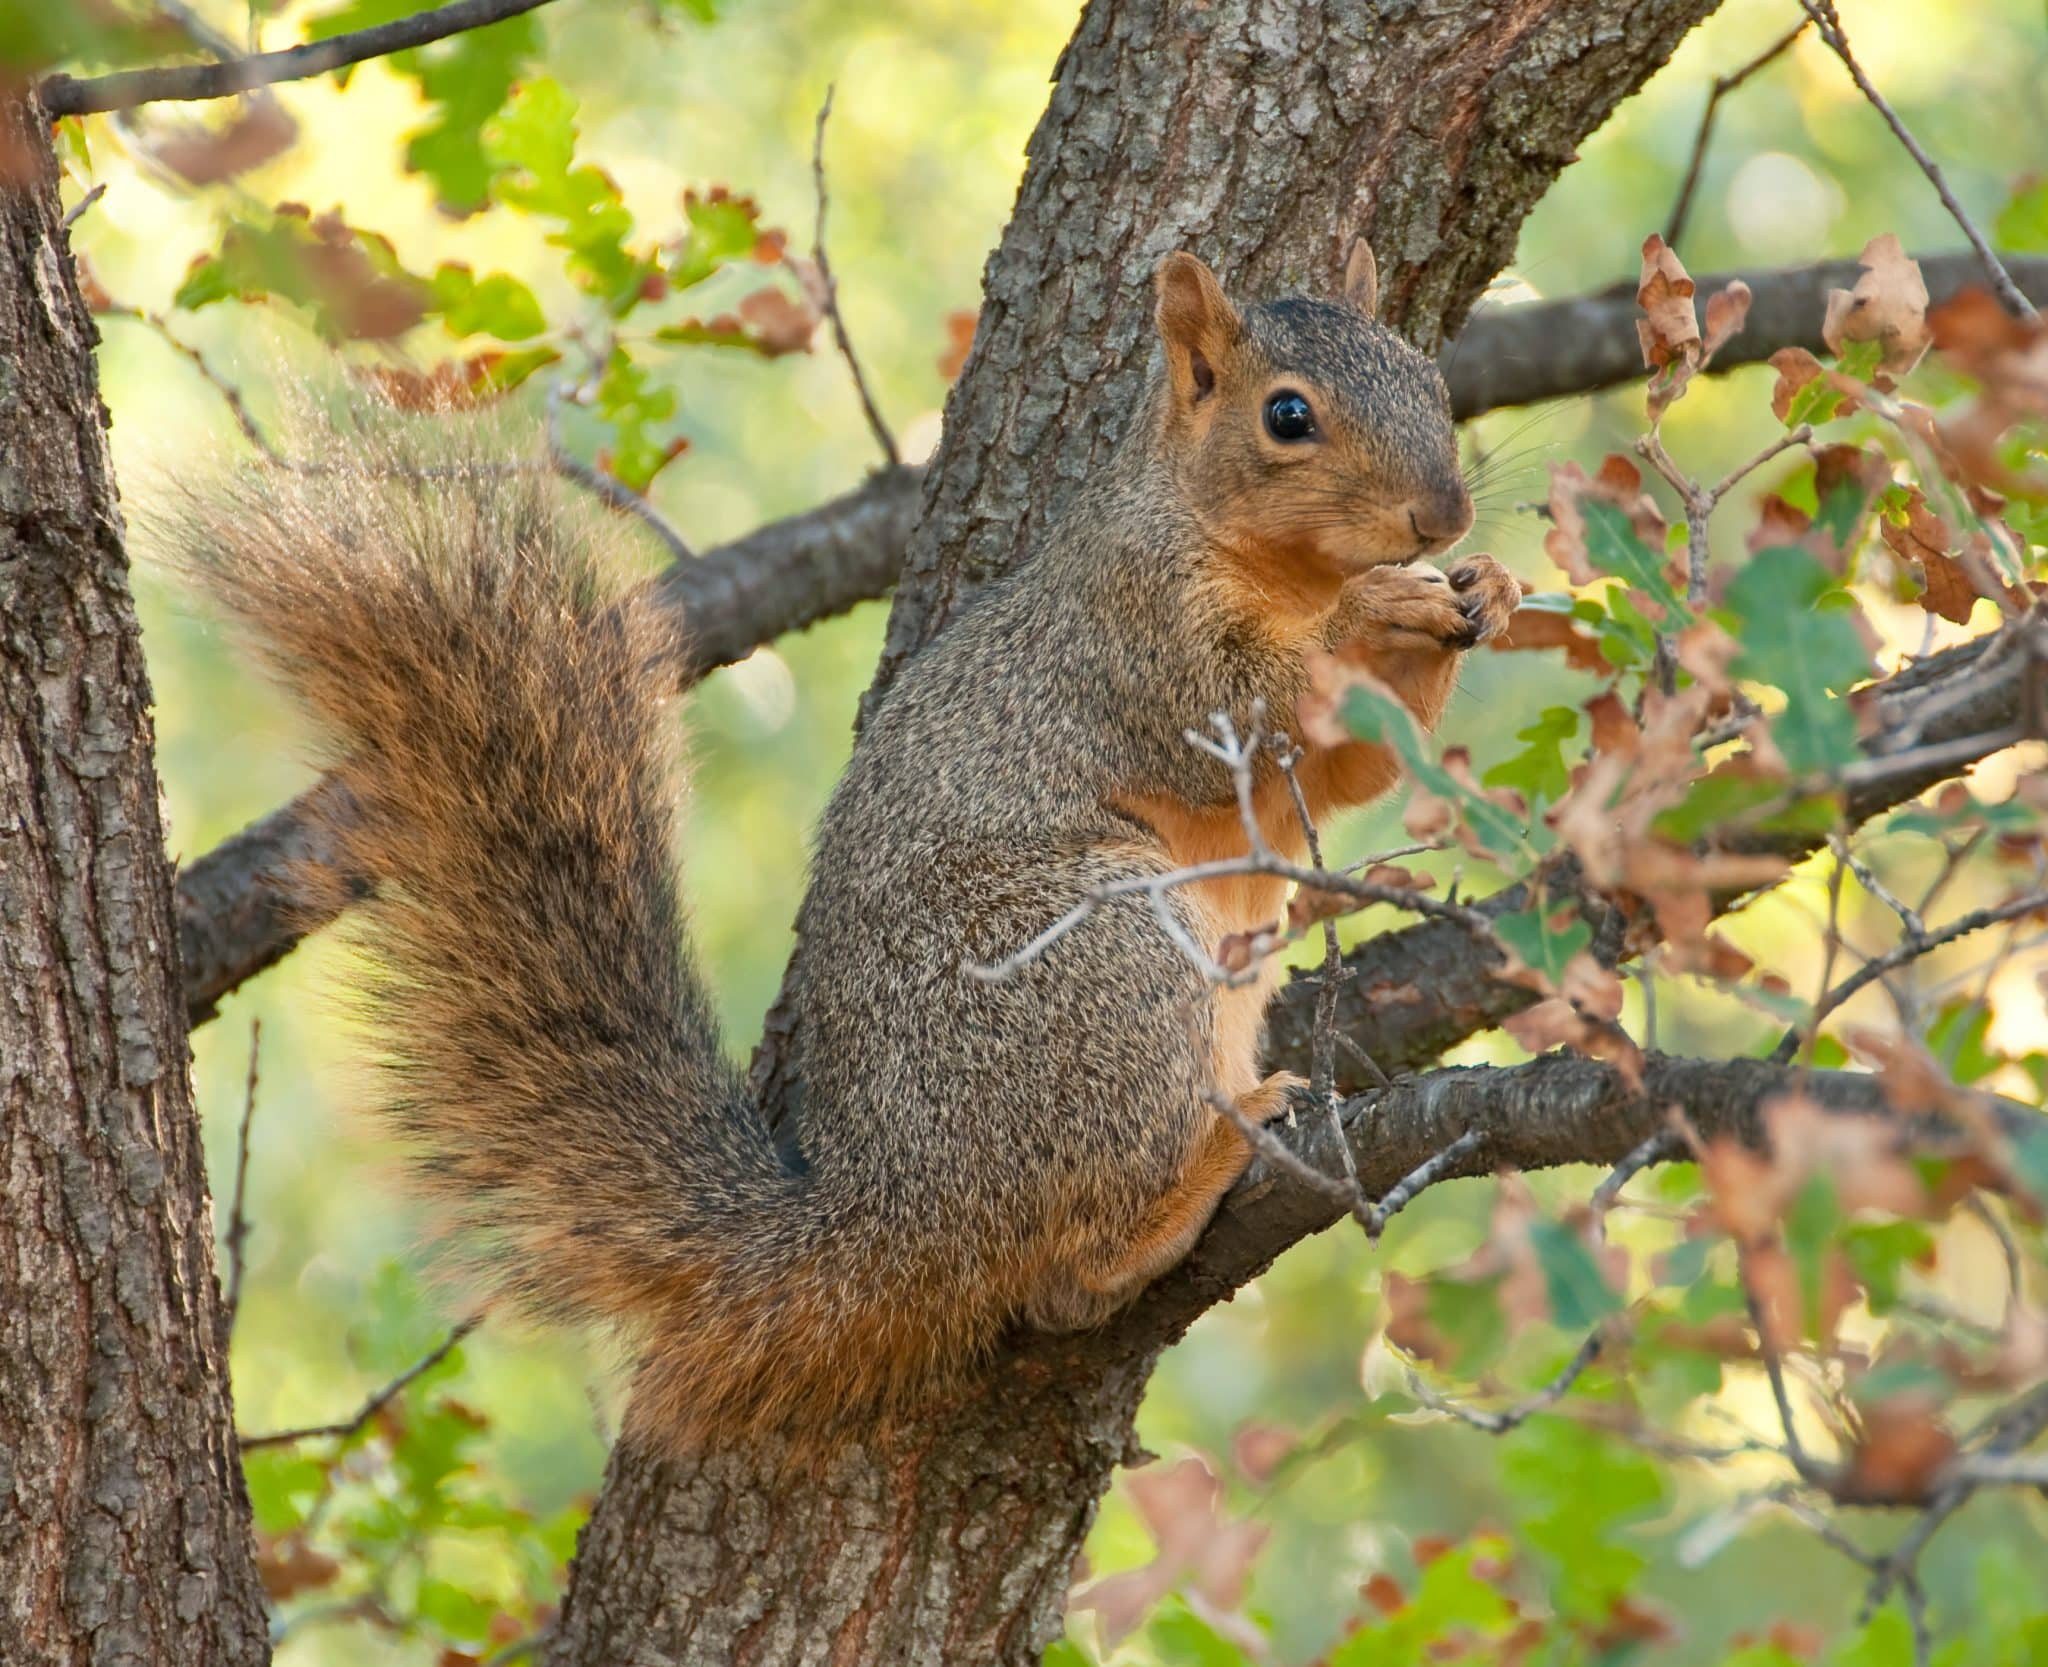 squirrel a eating nut on a tree